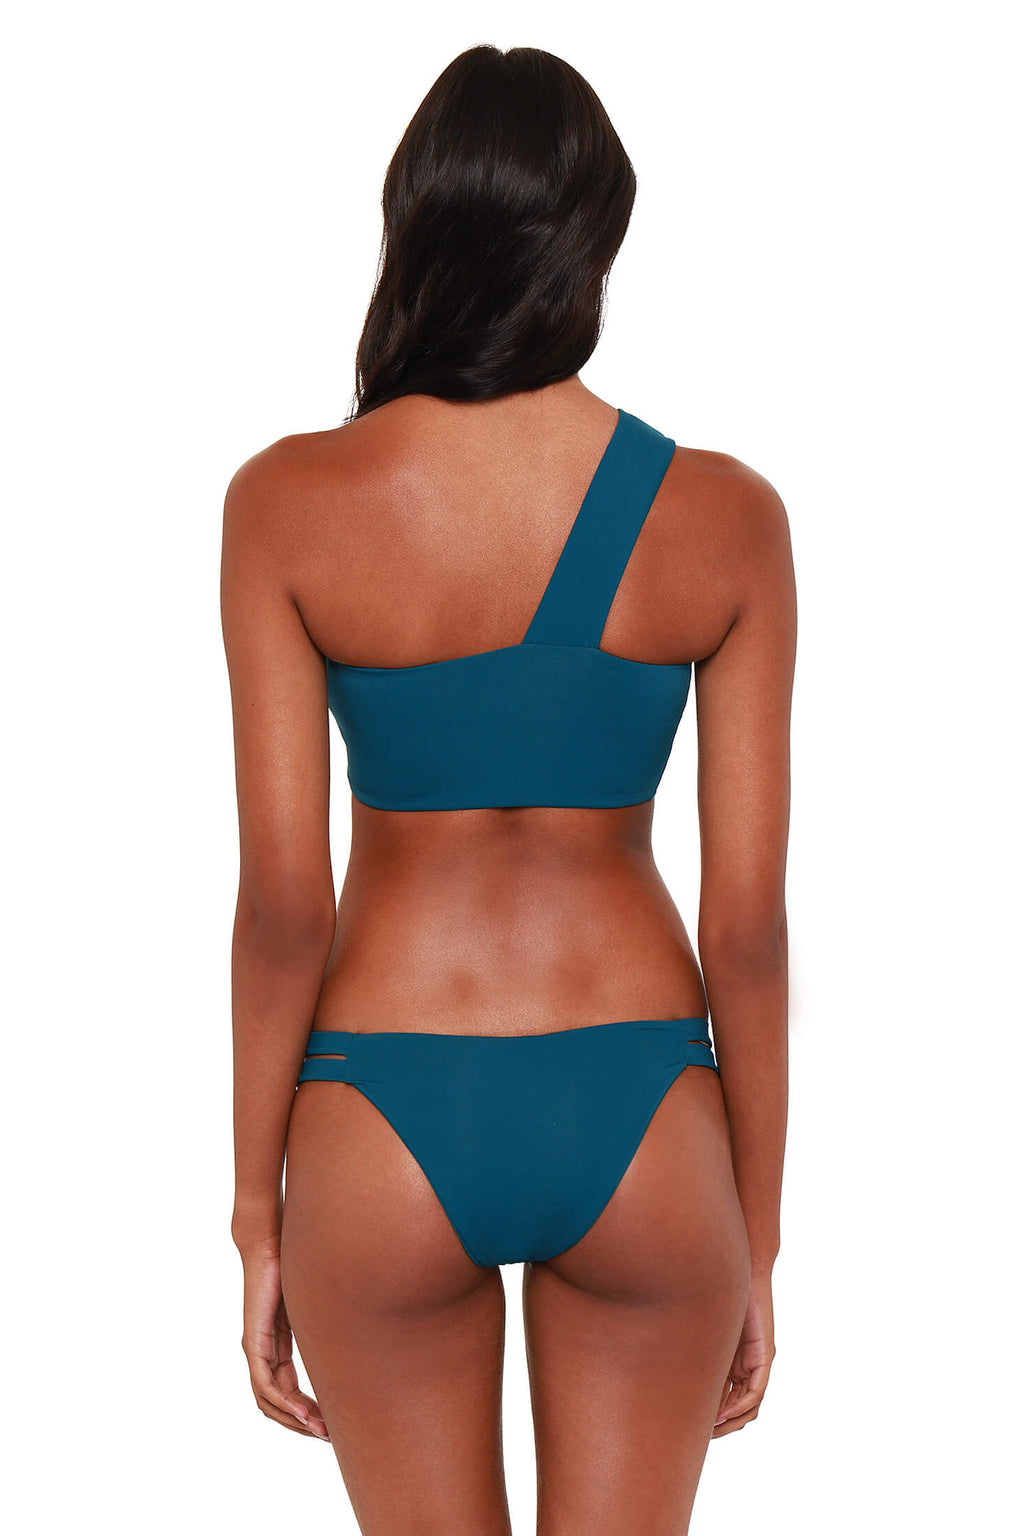 Jeanette Double Side Strap Bikini Bottoms - Sea Floor